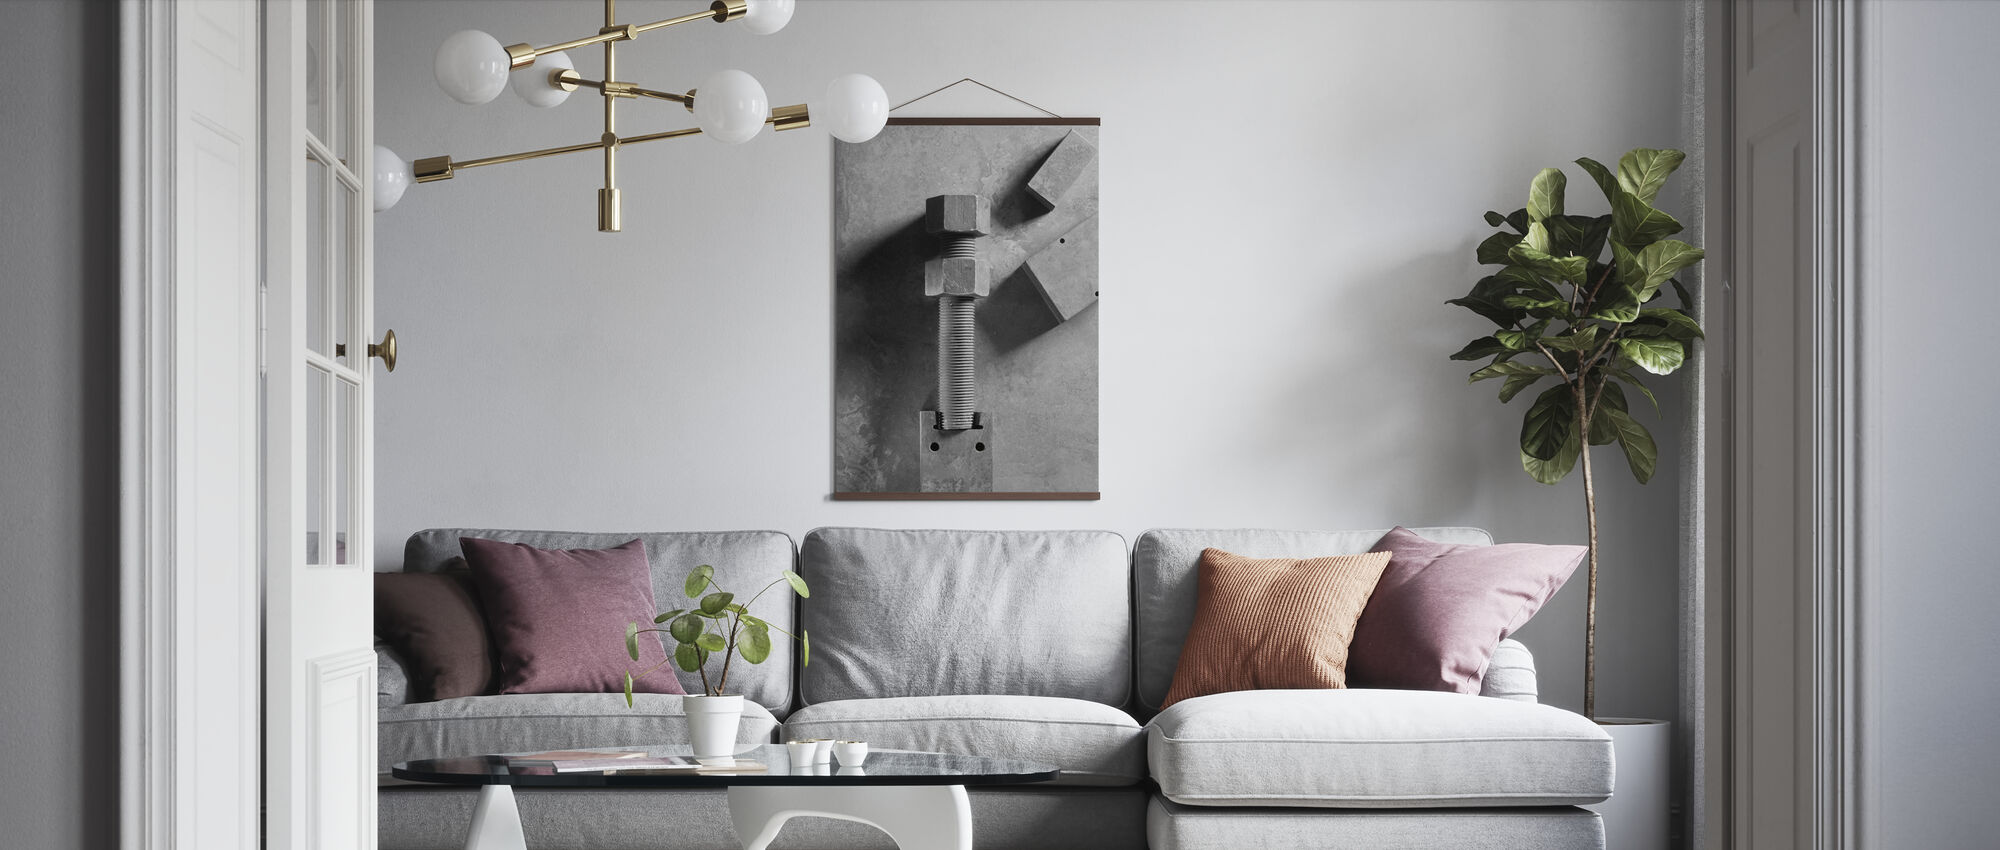 Bridge Bolts - Poster - Living Room